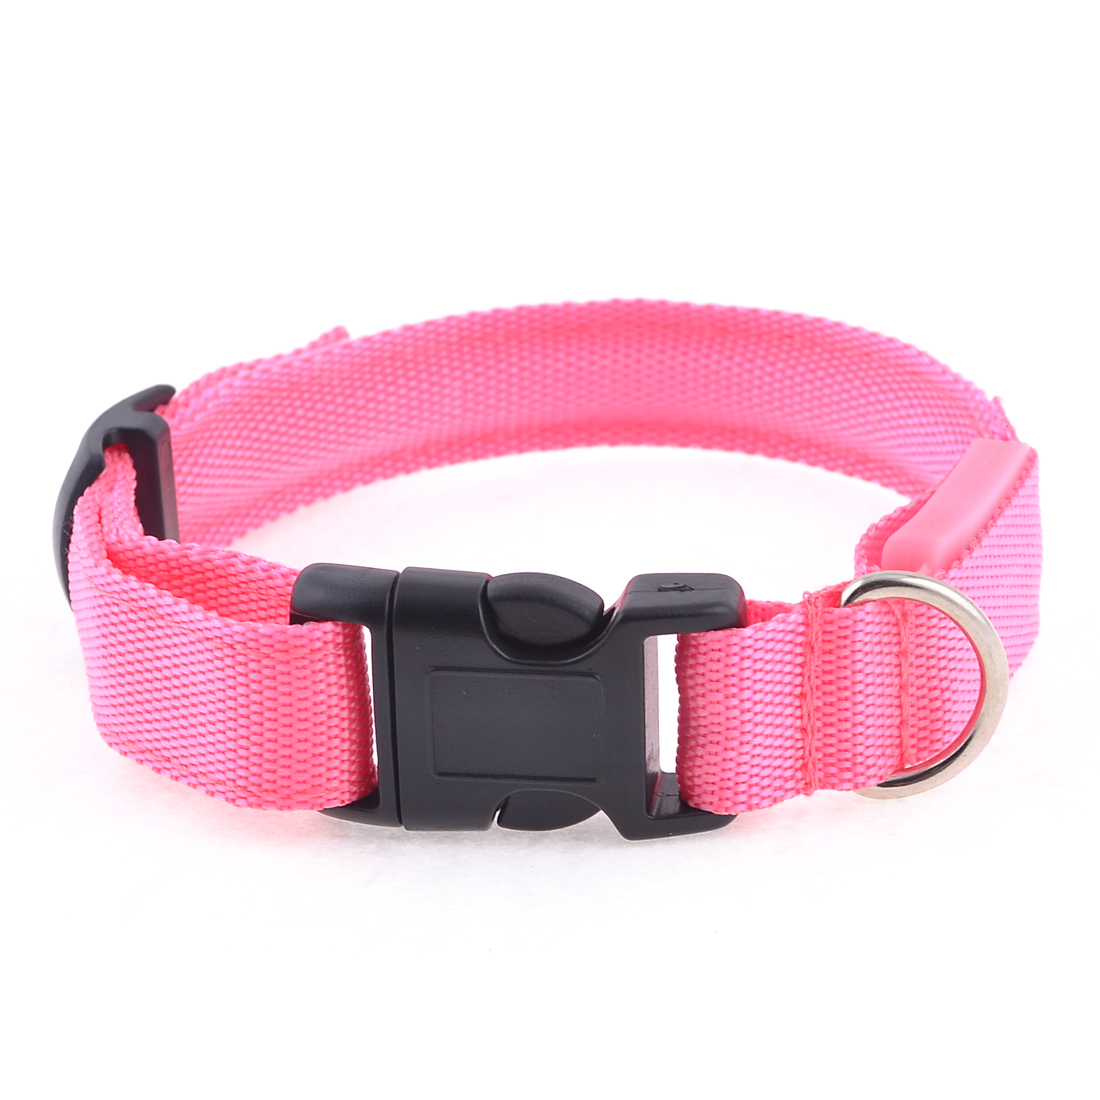 "Pink LED Flash Light 17"" Length Release Buckle Nylon Pet Dog Leash Rope Strap"